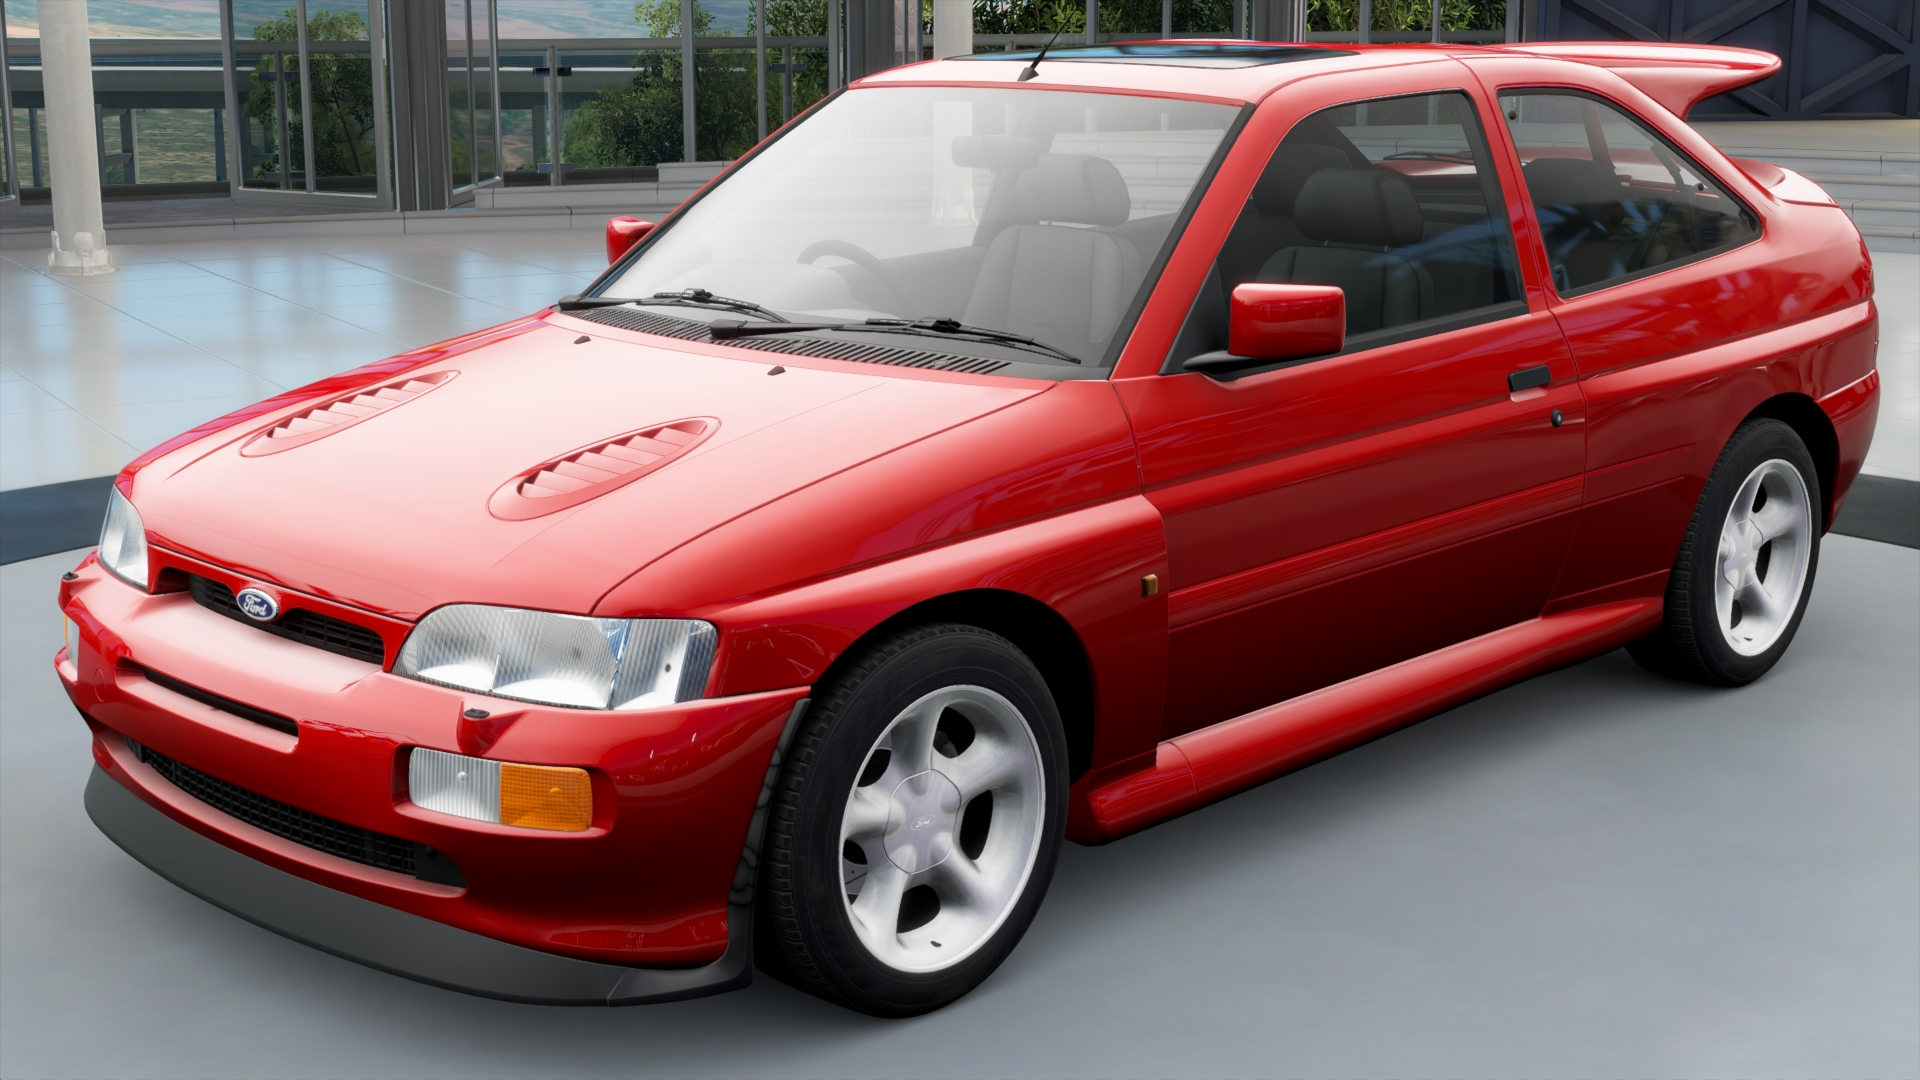 ford escort rs cosworth forza motorsport wiki fandom powered by wikia. Black Bedroom Furniture Sets. Home Design Ideas